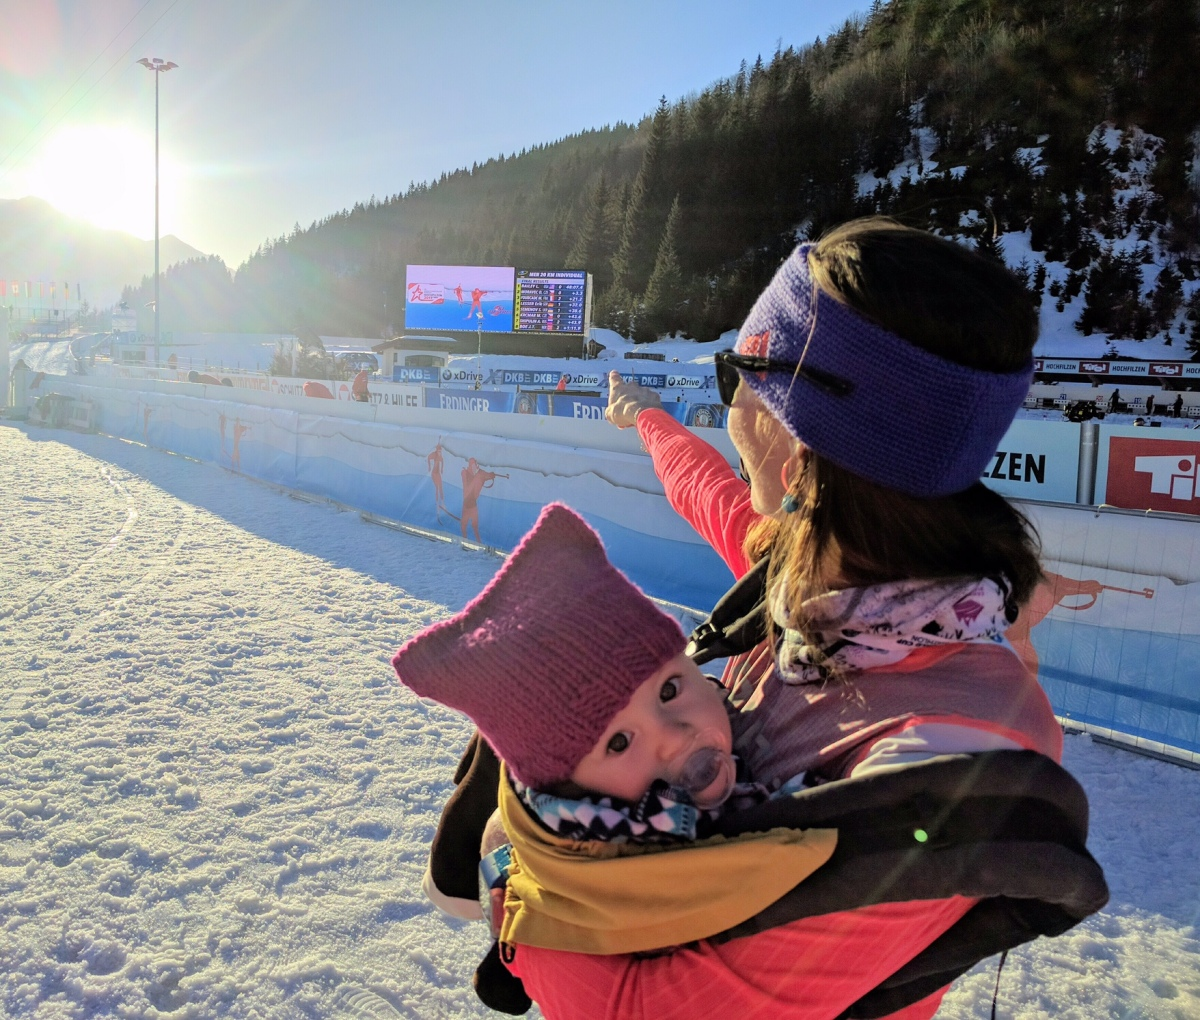 Erika points at the final score board while Ophelia waits for the podium!